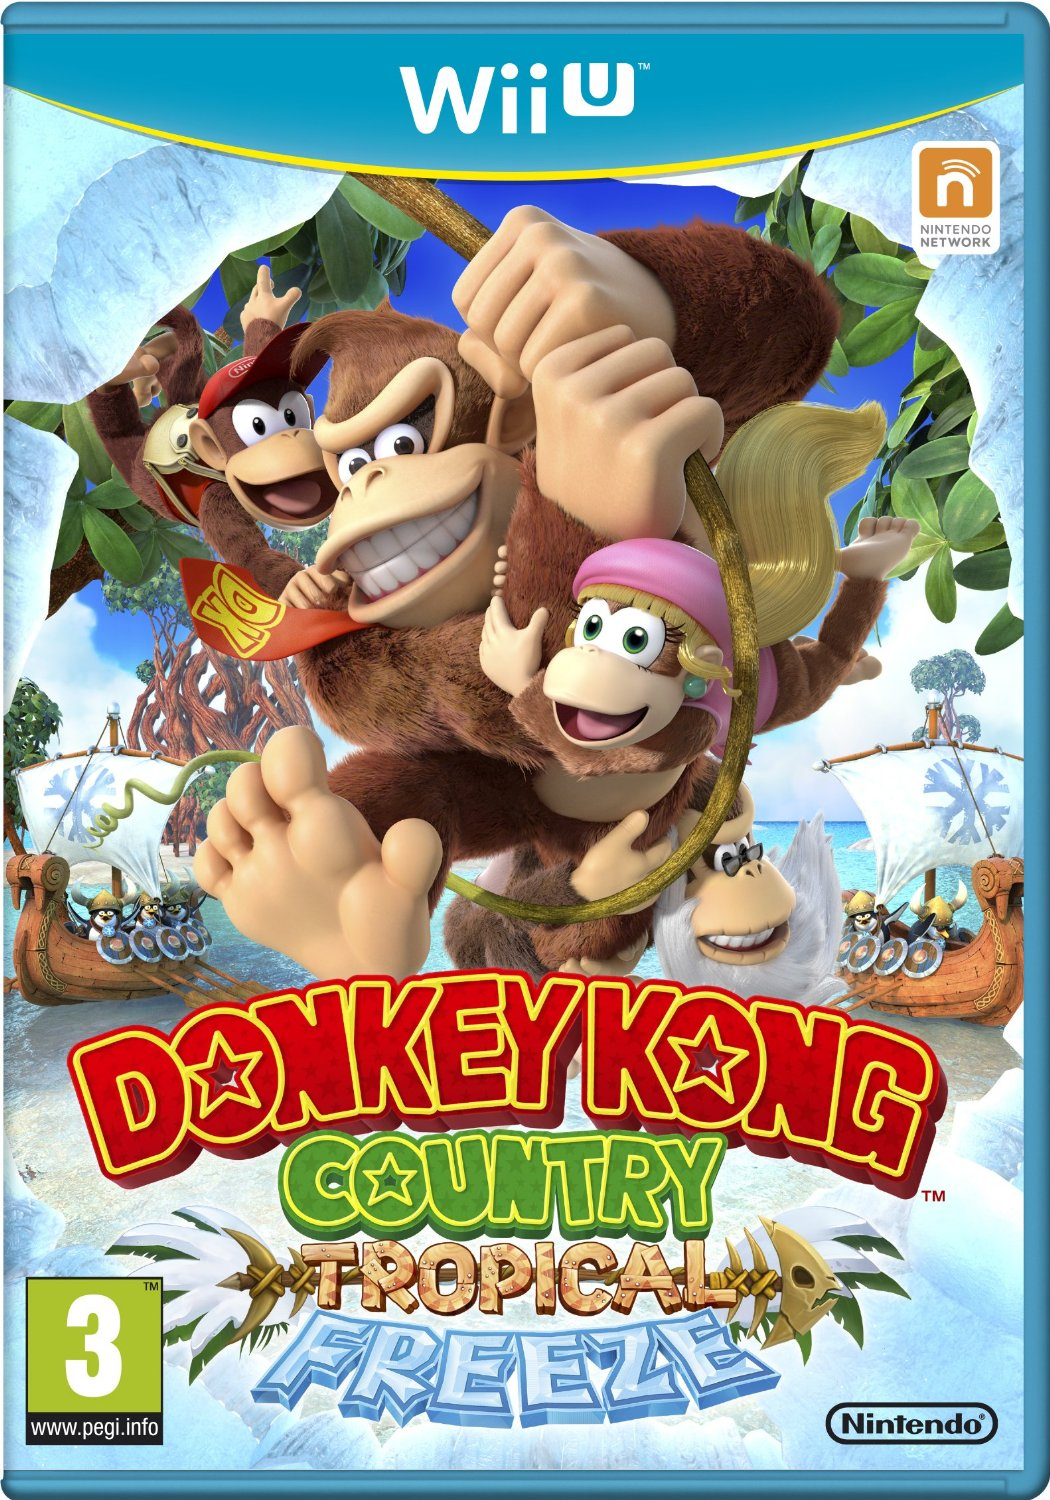 Donkey Kong Country Tropical Freeze full game free pc download